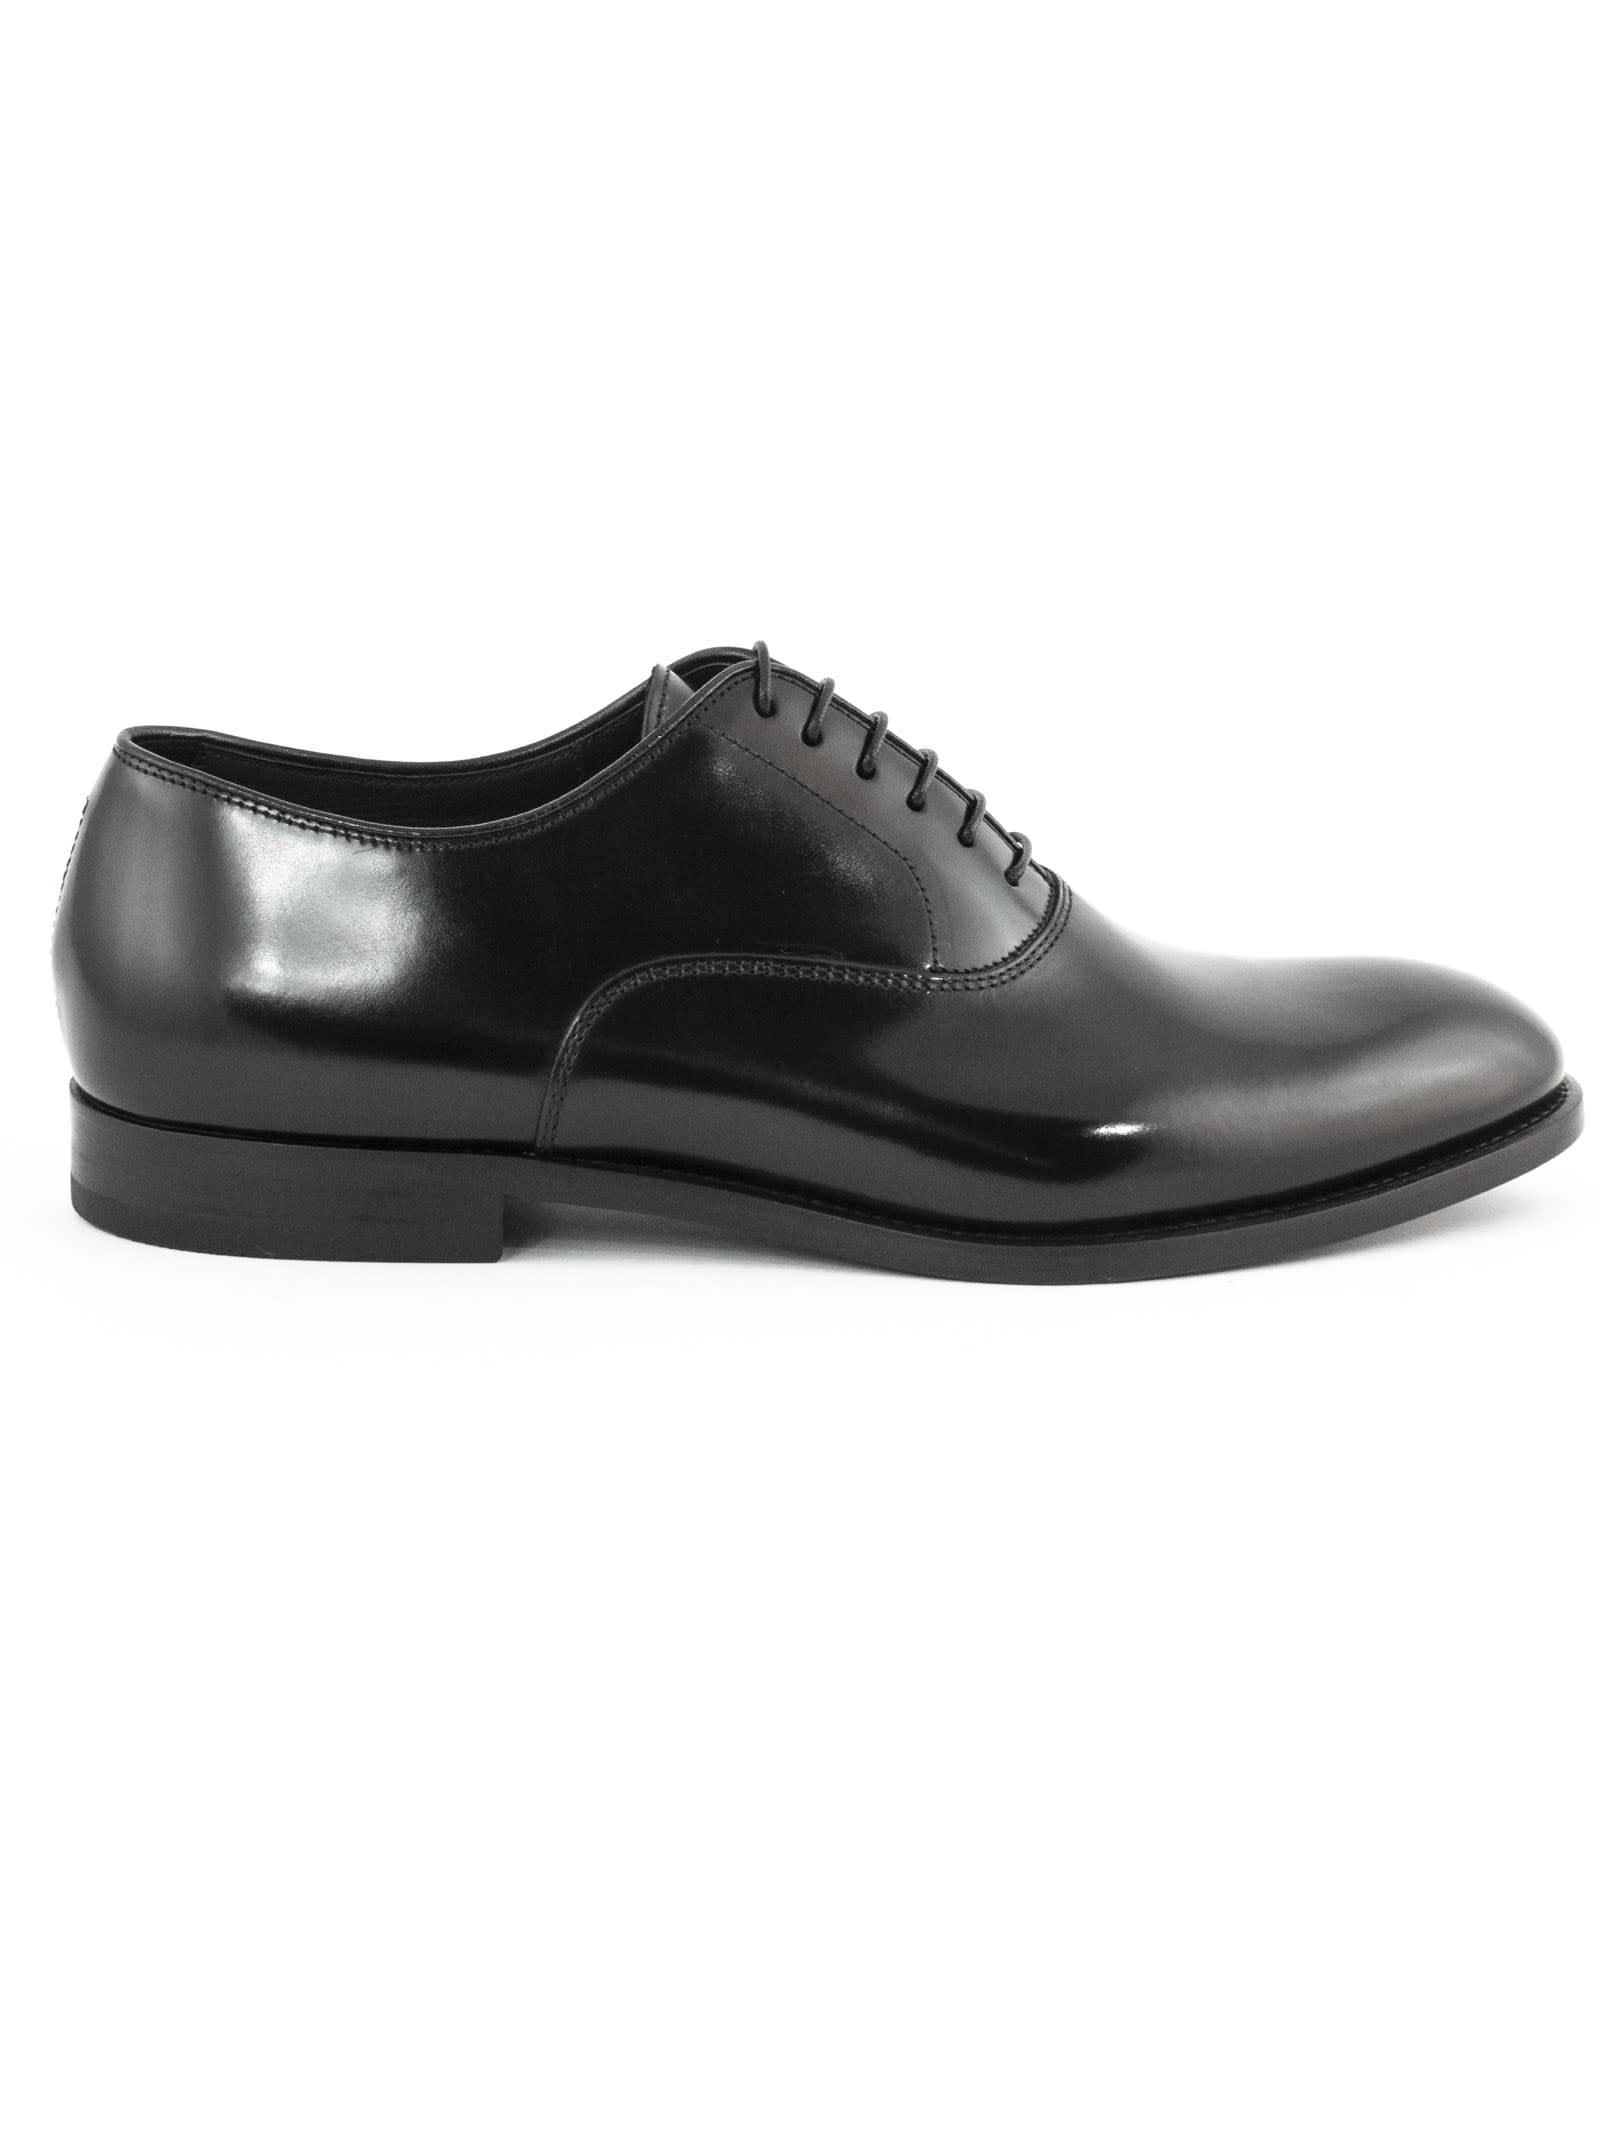 Doucals Black Leather Oxford Shoes